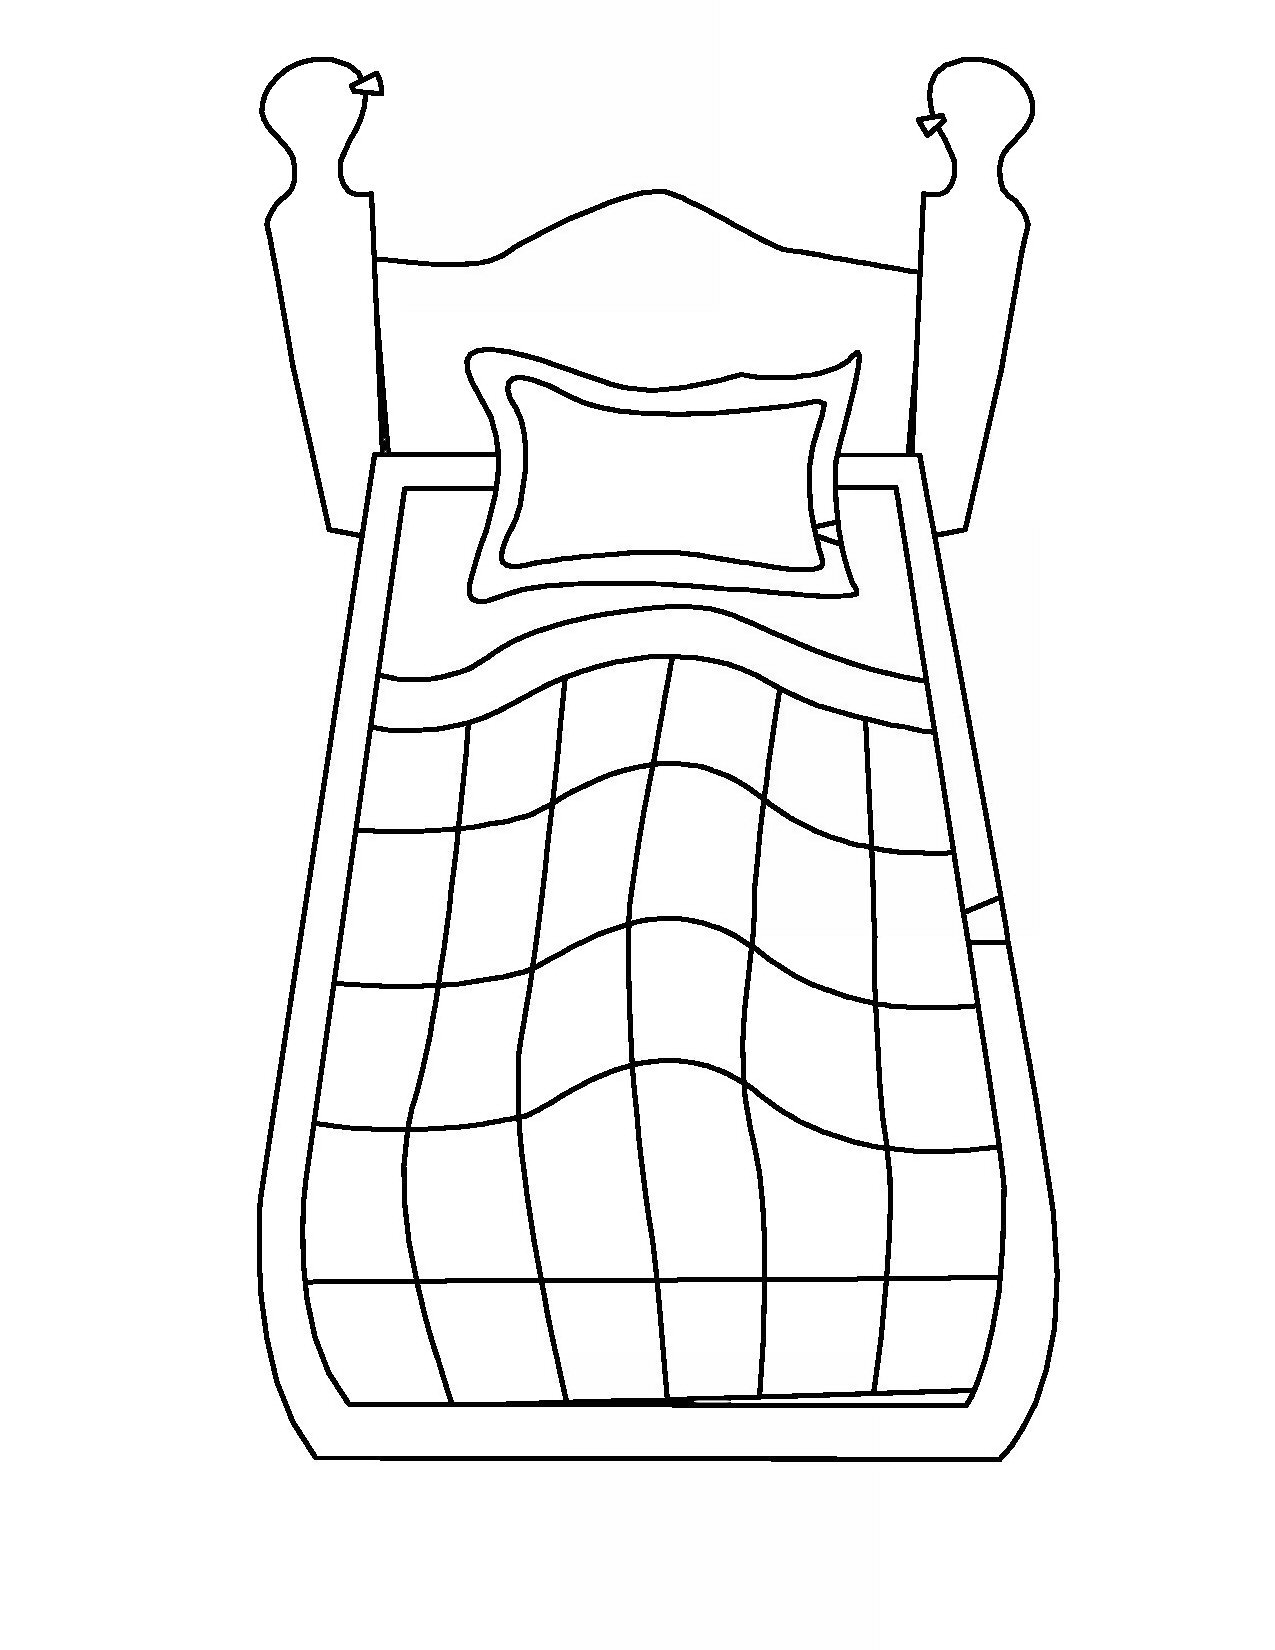 Drawing free download on. Quilt clipart draw